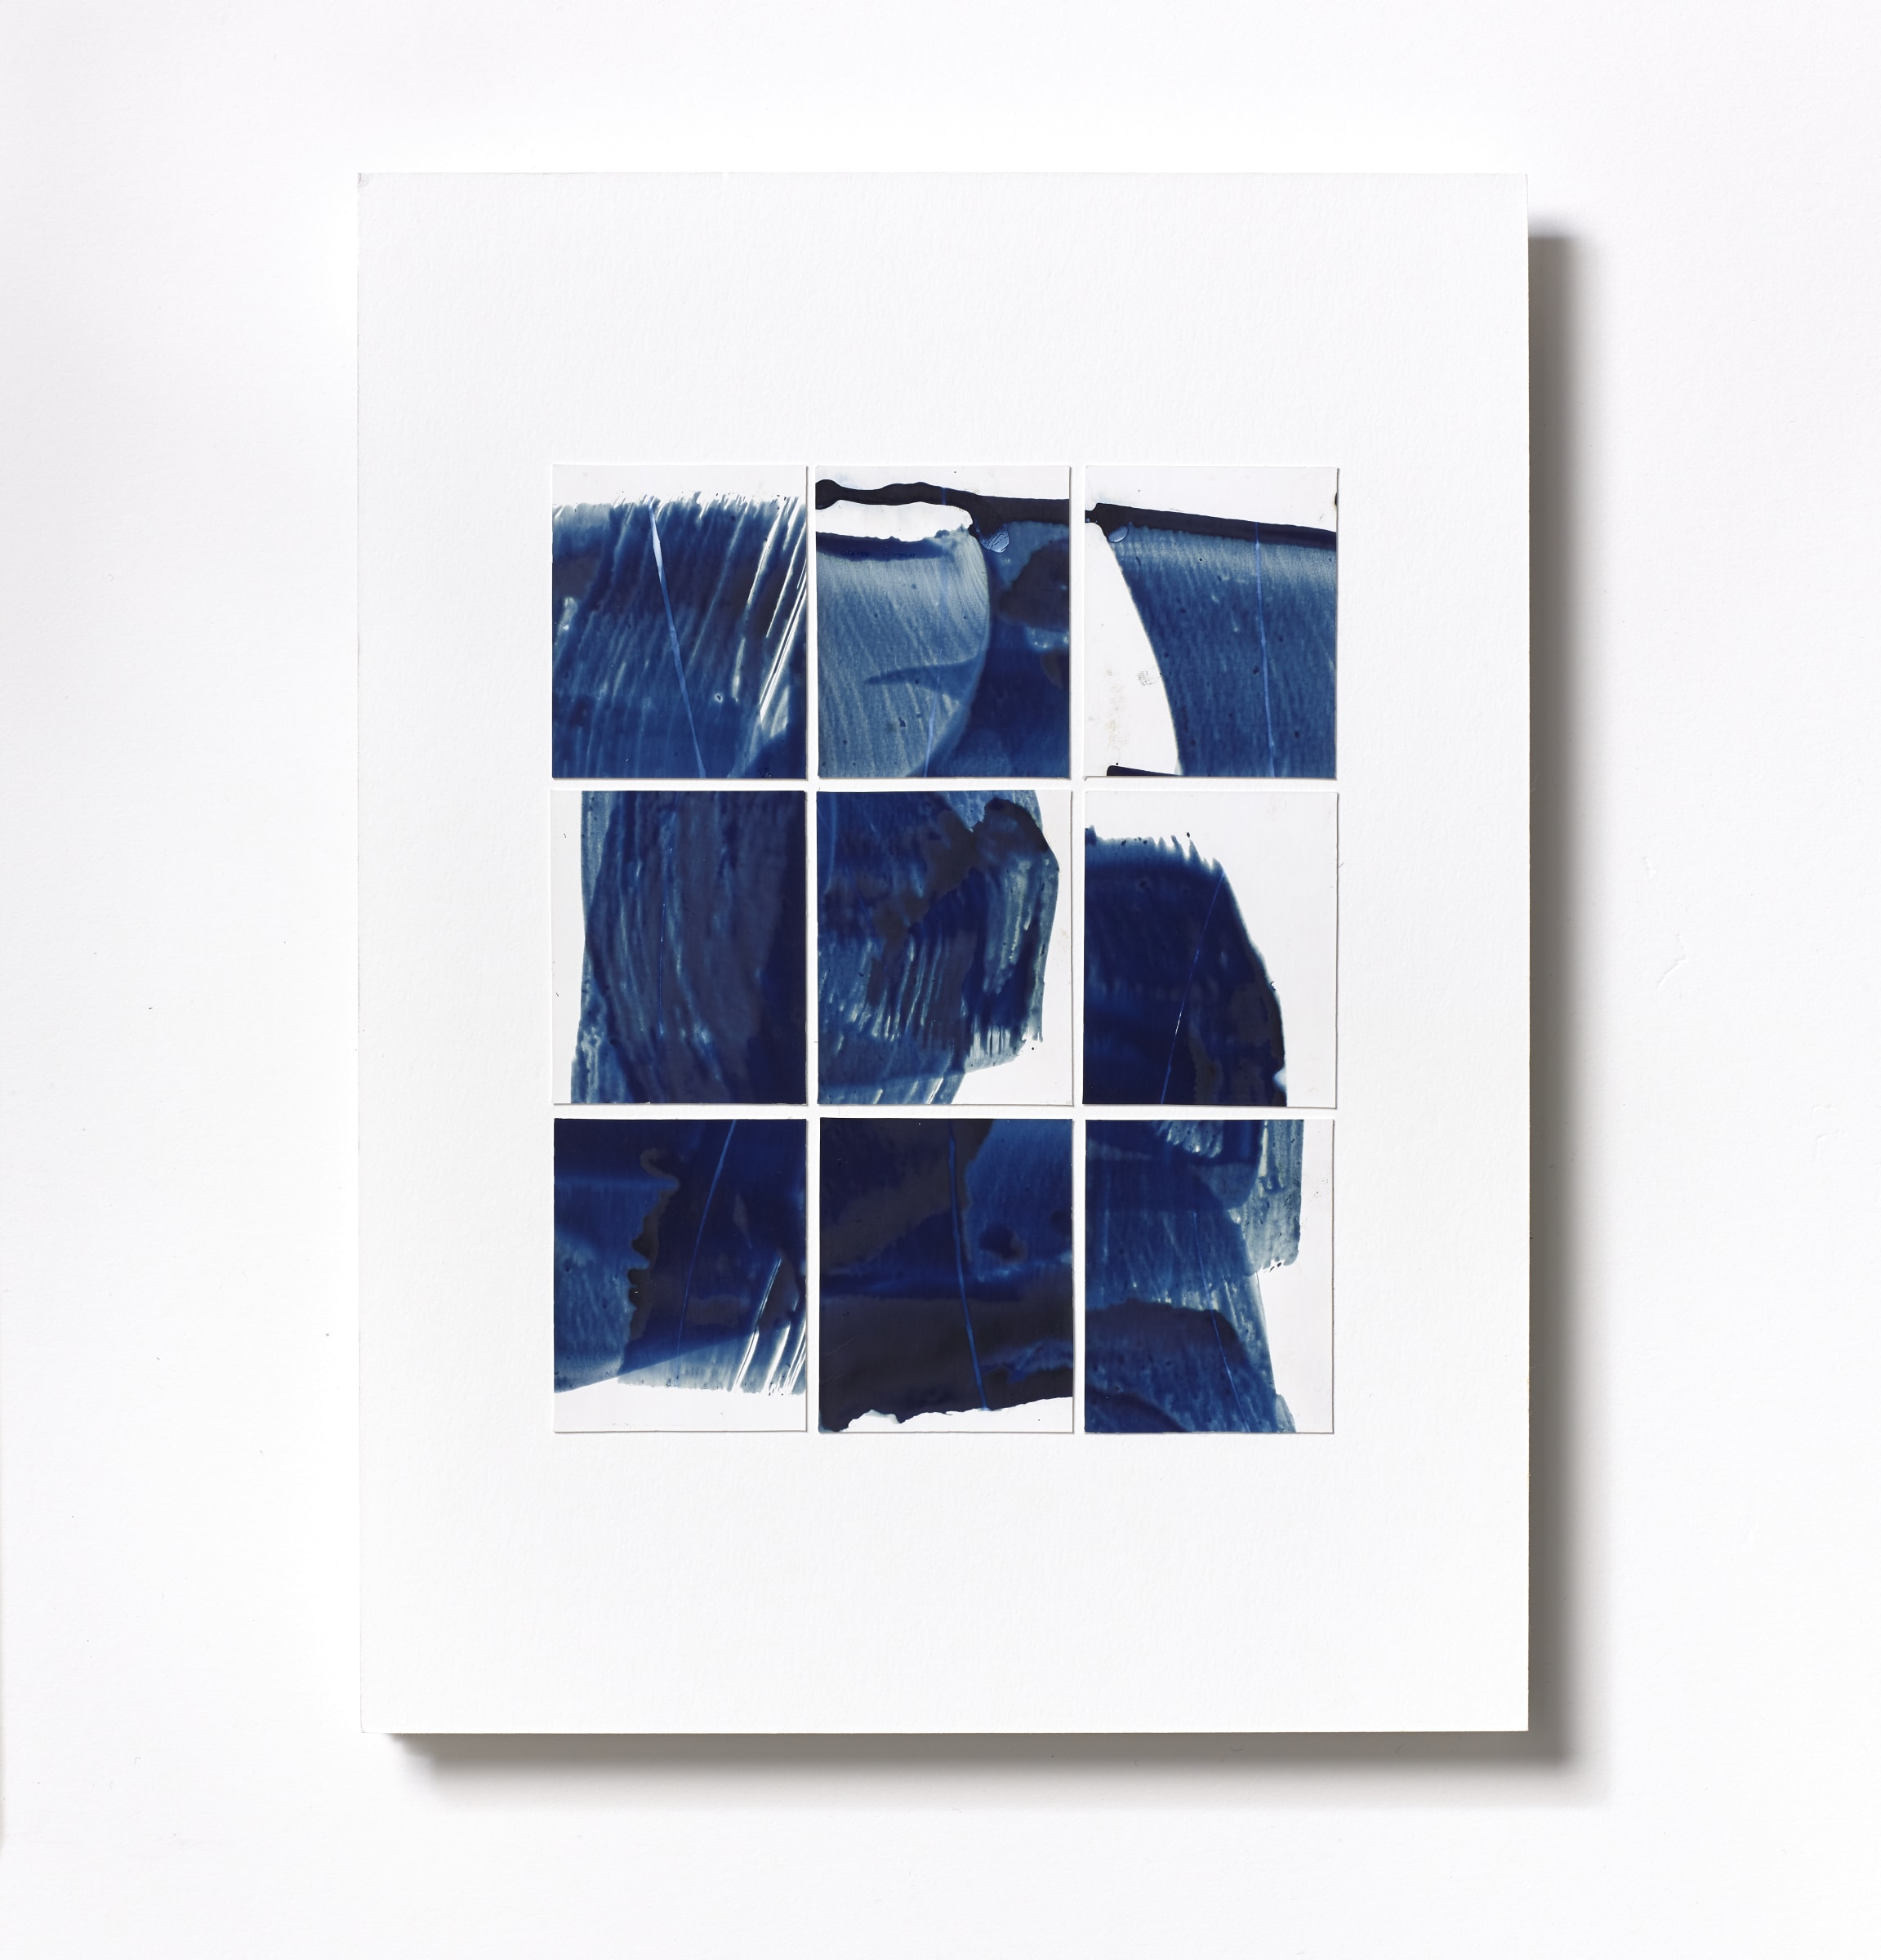 """<span class=""""link fancybox-details-link""""><a href=""""/content/feature/218/artworks575/"""">View Detail Page</a></span><div class=""""medium"""">Cyanotype Collage of nine hand-painted 2 7/8"""" x 1 7/8"""" cyanotype photograms on a 12 x 9 inch 8-ply museum board<br /> Print only<br /> Unique</div> <div class=""""dimensions"""">30.5 x 22.9 cm<br /> 12 x 9 in</div>"""